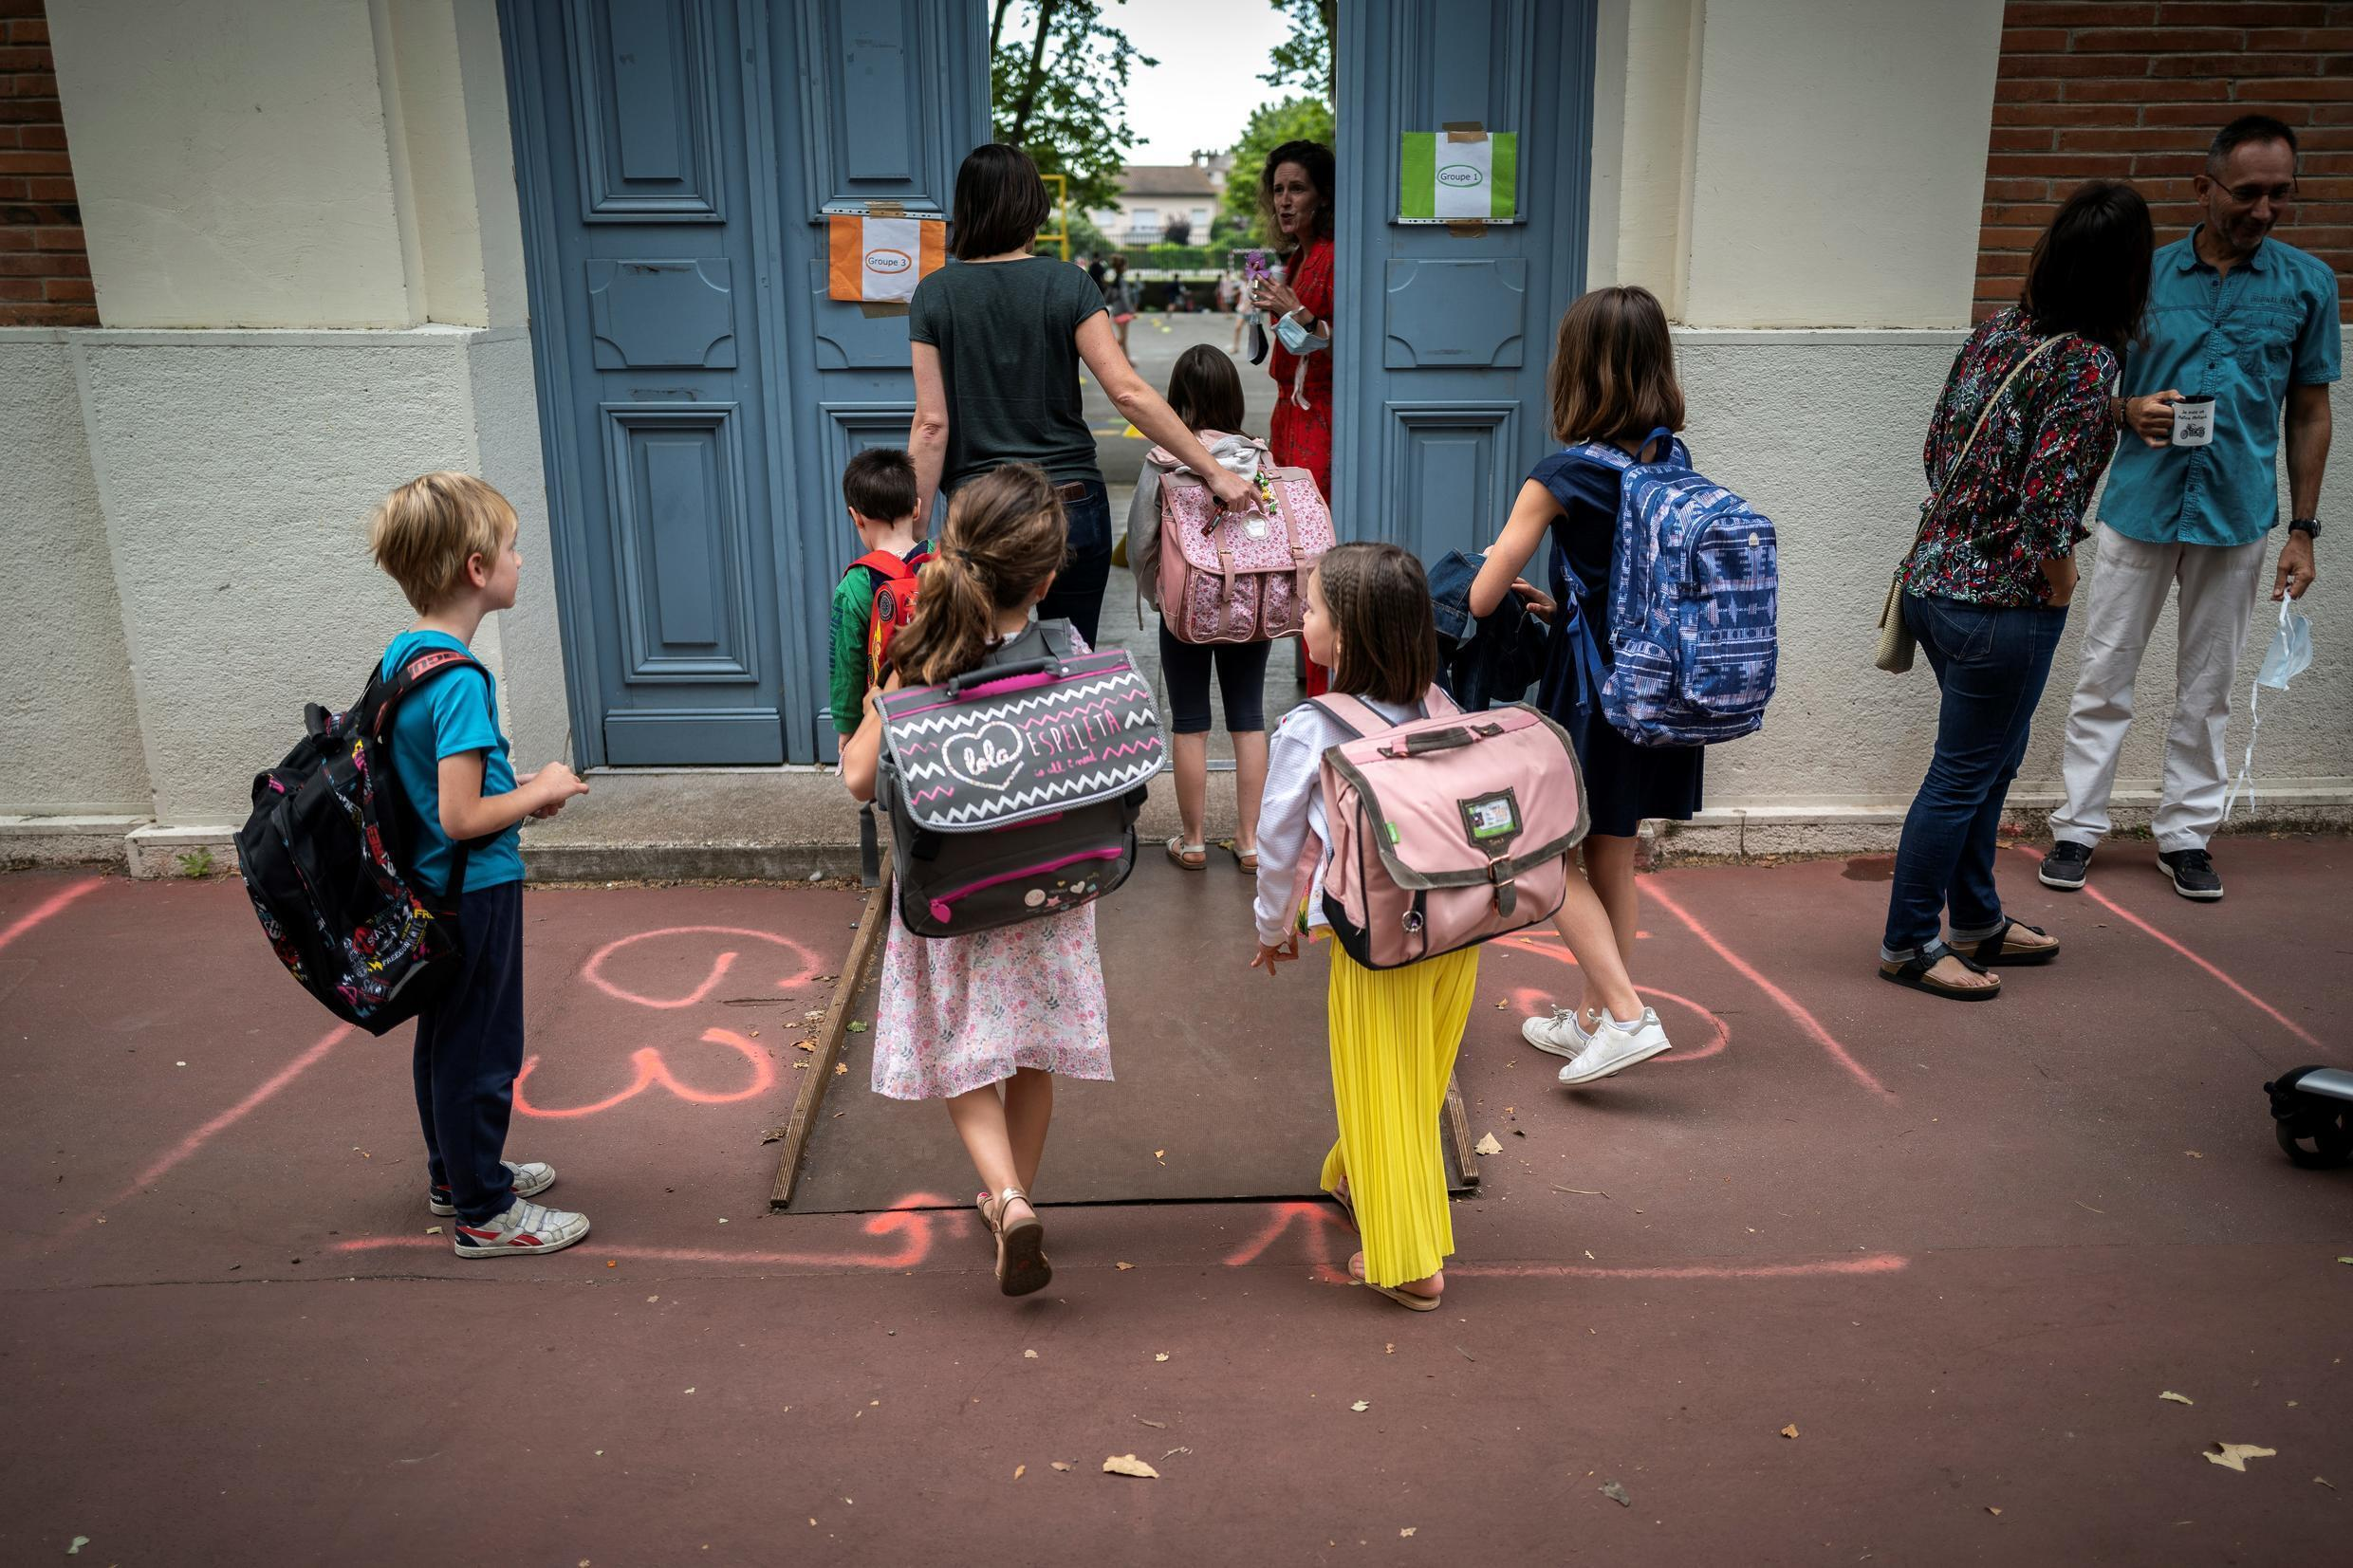 Many teachers and parents are worried the reopening of schools will accelerate the spread of Covid-19, but governments have insisted it should go ahead